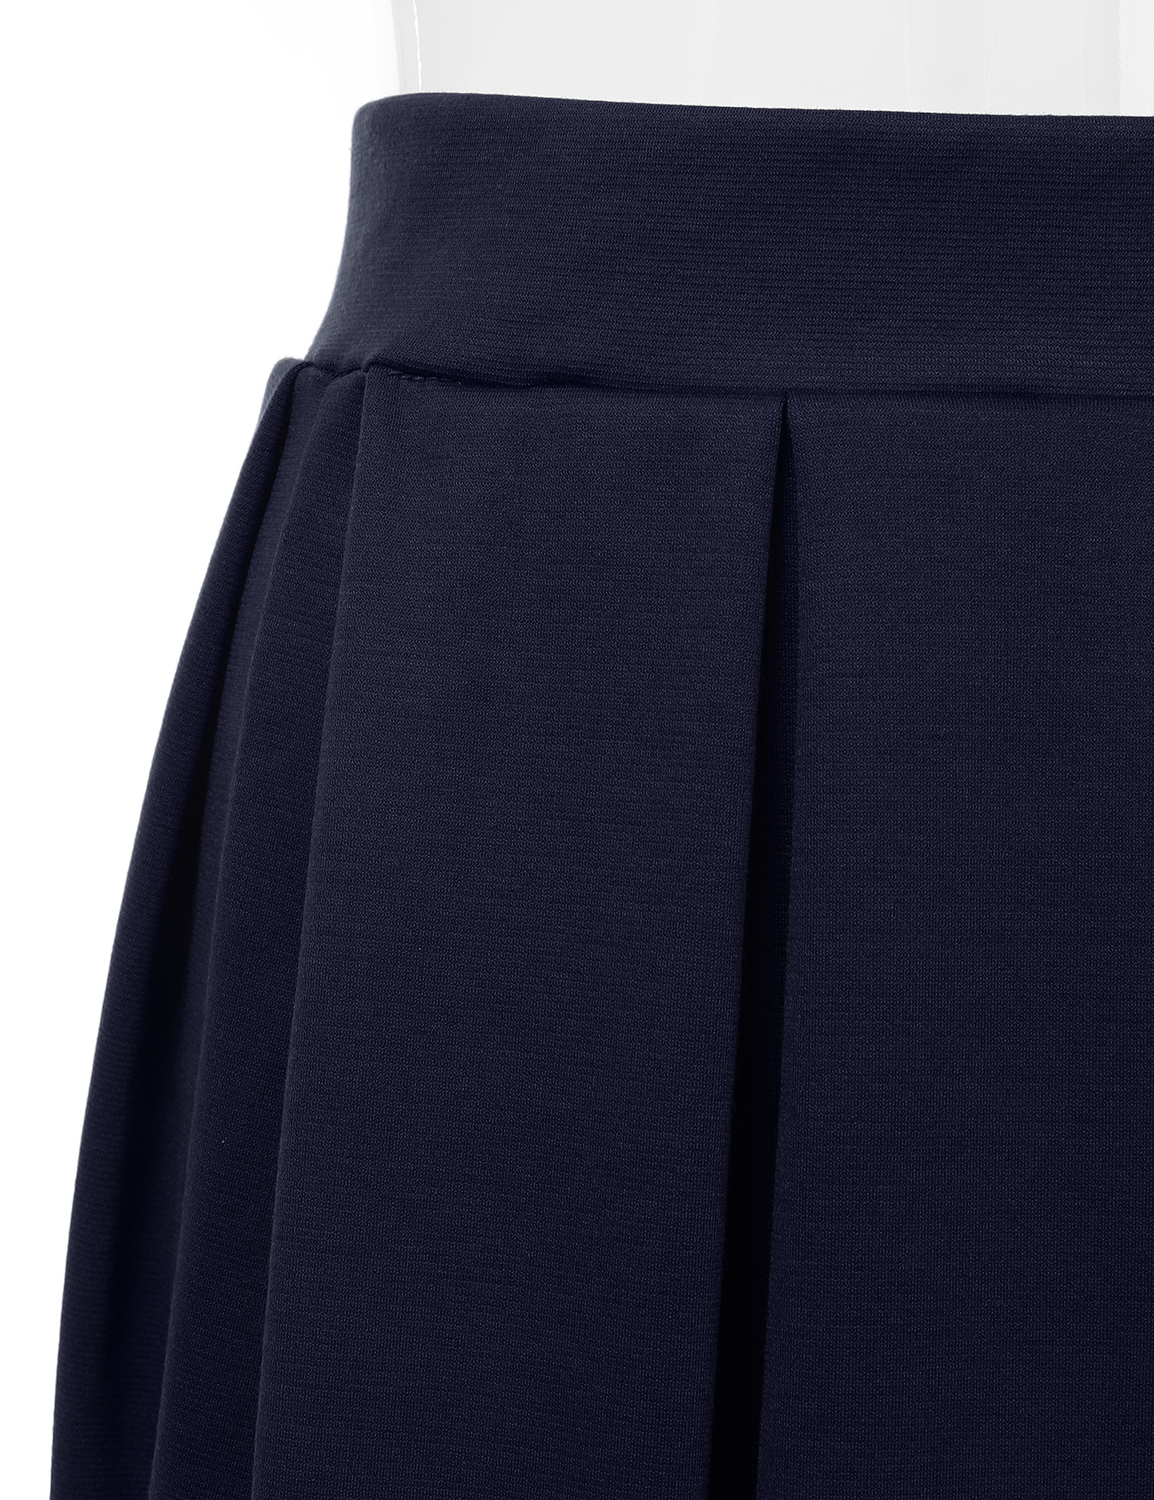 Doublju-Elastic-Waist-Flare-Pleated-Skater-Midi-Skirt-for-Women-with-Plus-Size thumbnail 16